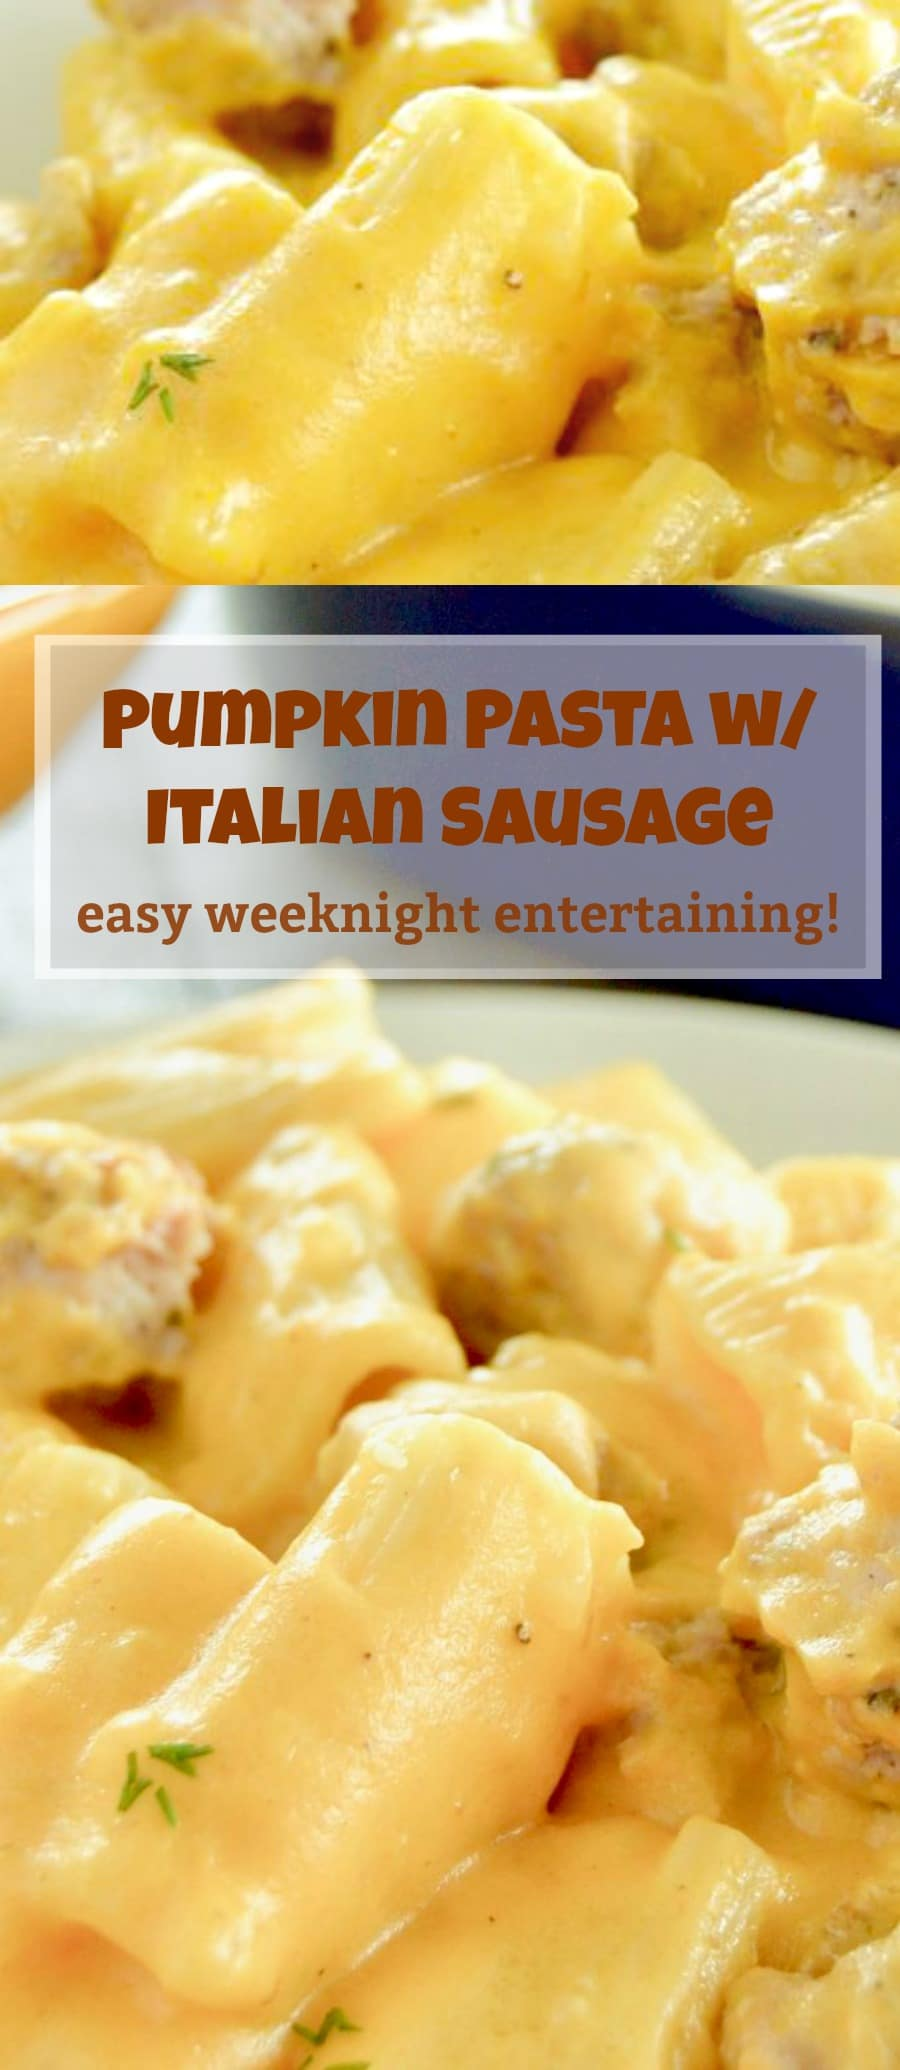 Pumpkin Pasta with Italian Sausage is velvety, cheesy, with hints of earthy pumpkin to lighten the sauce from your regular Mac n Cheese.  A simple dinner choice for entertaining on a work night.